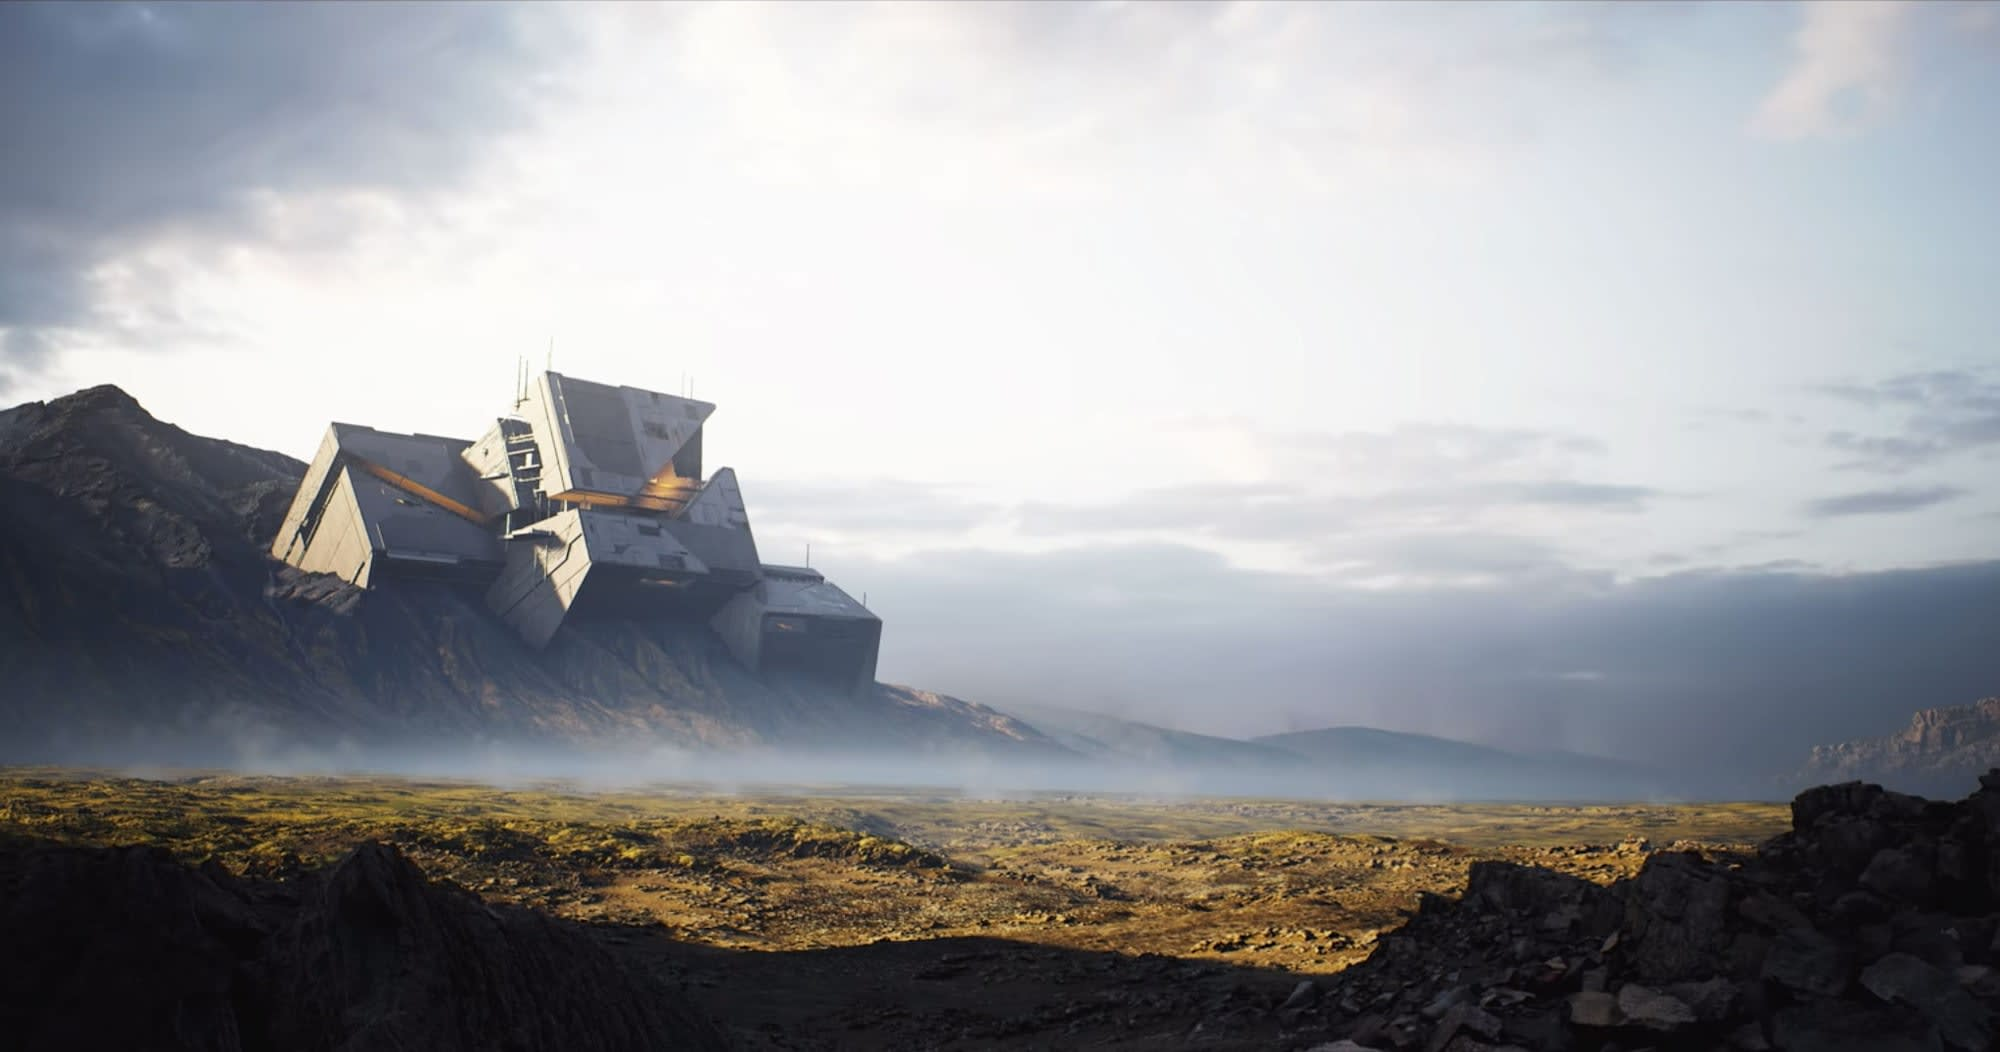 Short film created in Unreal Engine showcases a